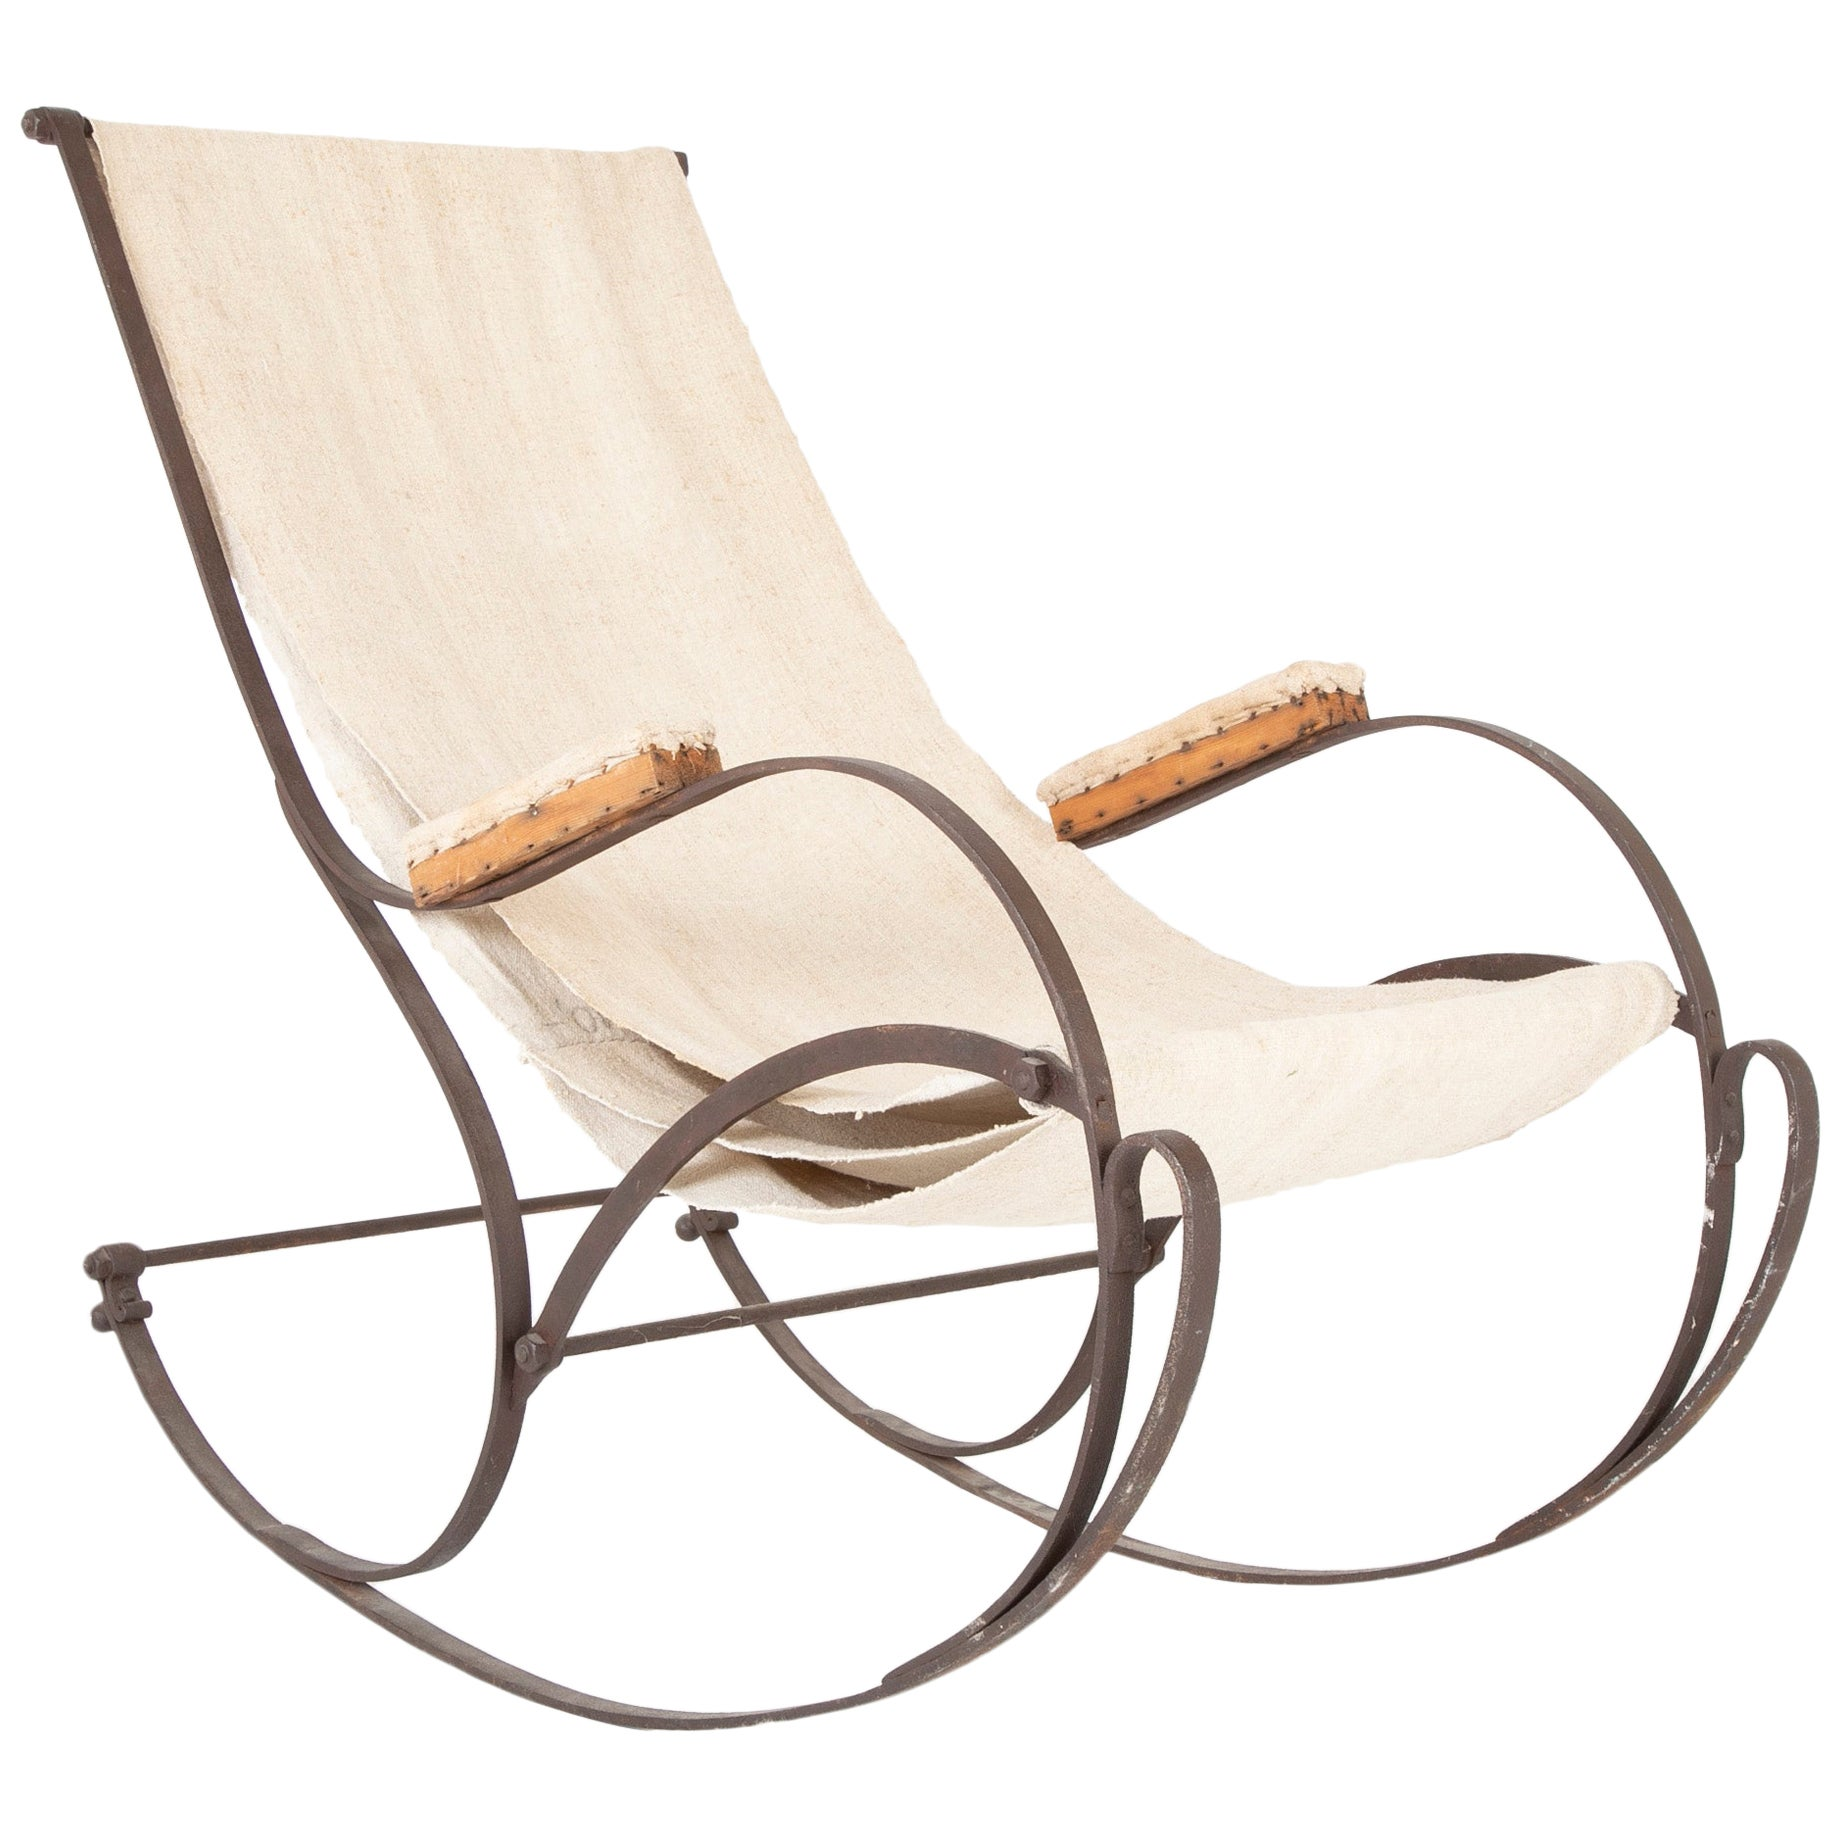 19th Century French Cast Iron and Canvas Rocking Chair